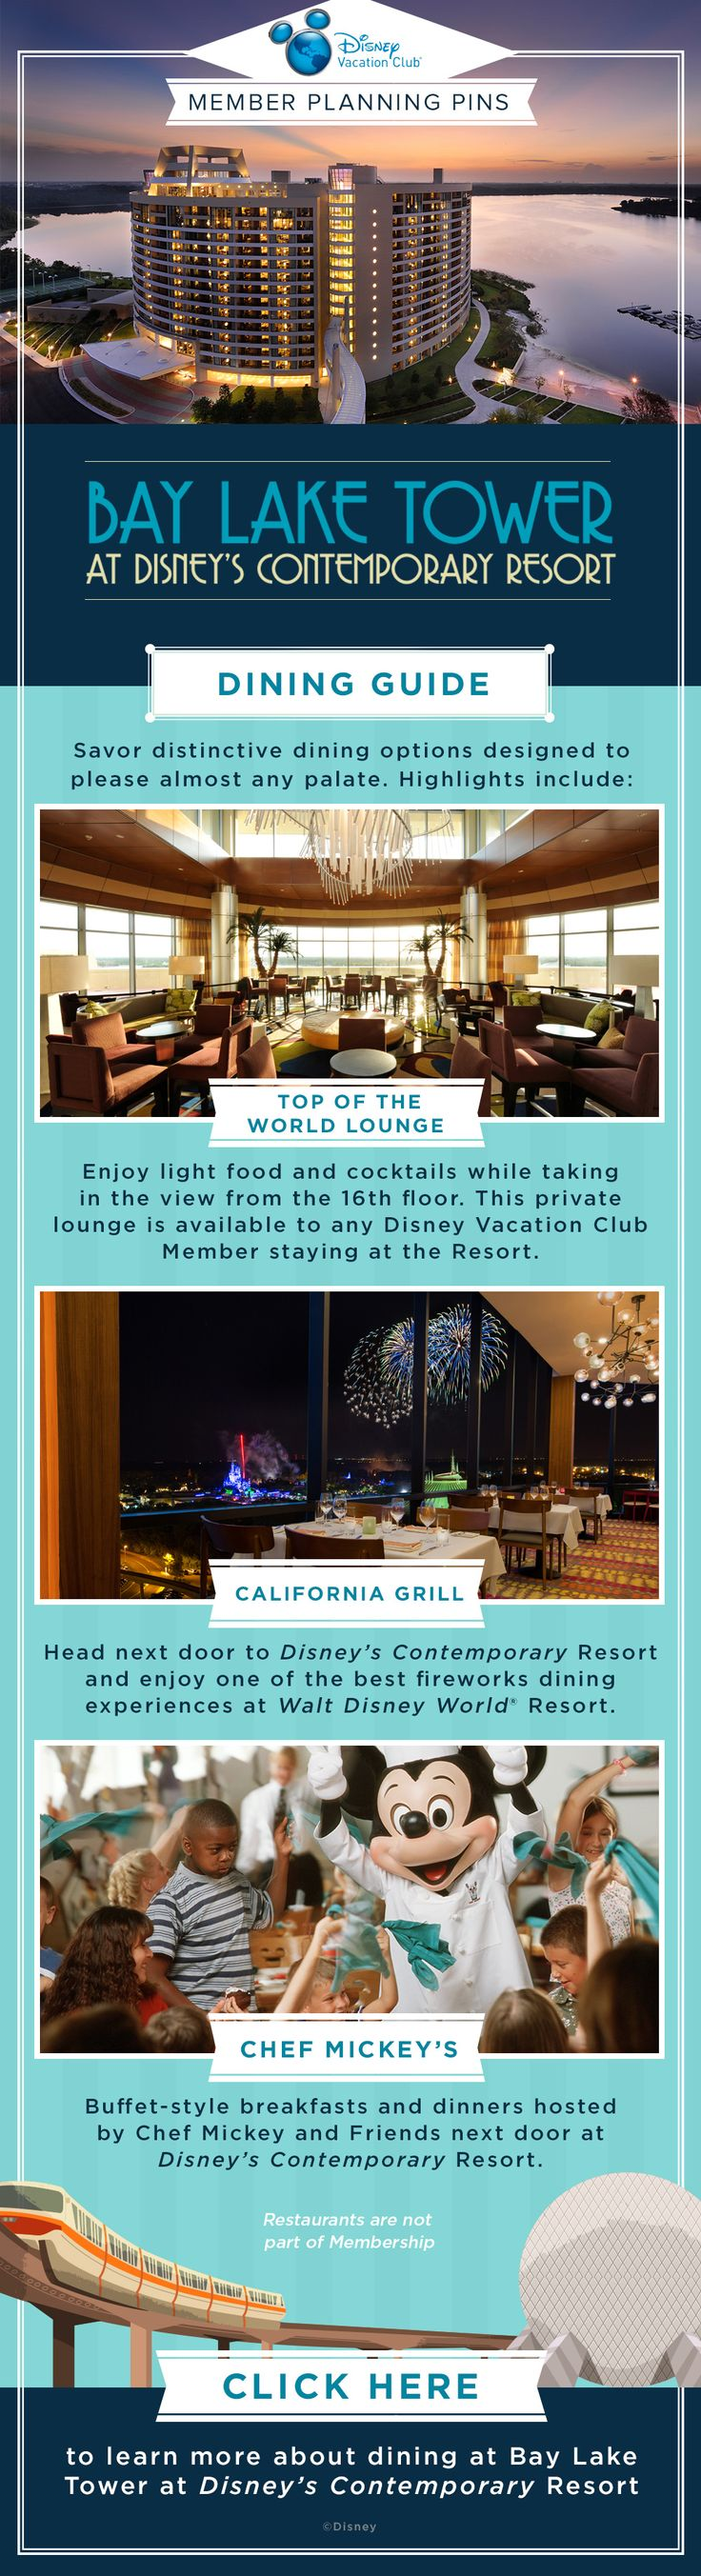 best 25 disney vacation club ideas on pinterest vacation club plan your next disney vacation club vacation to bay lake tower at disney s contemporary resort with